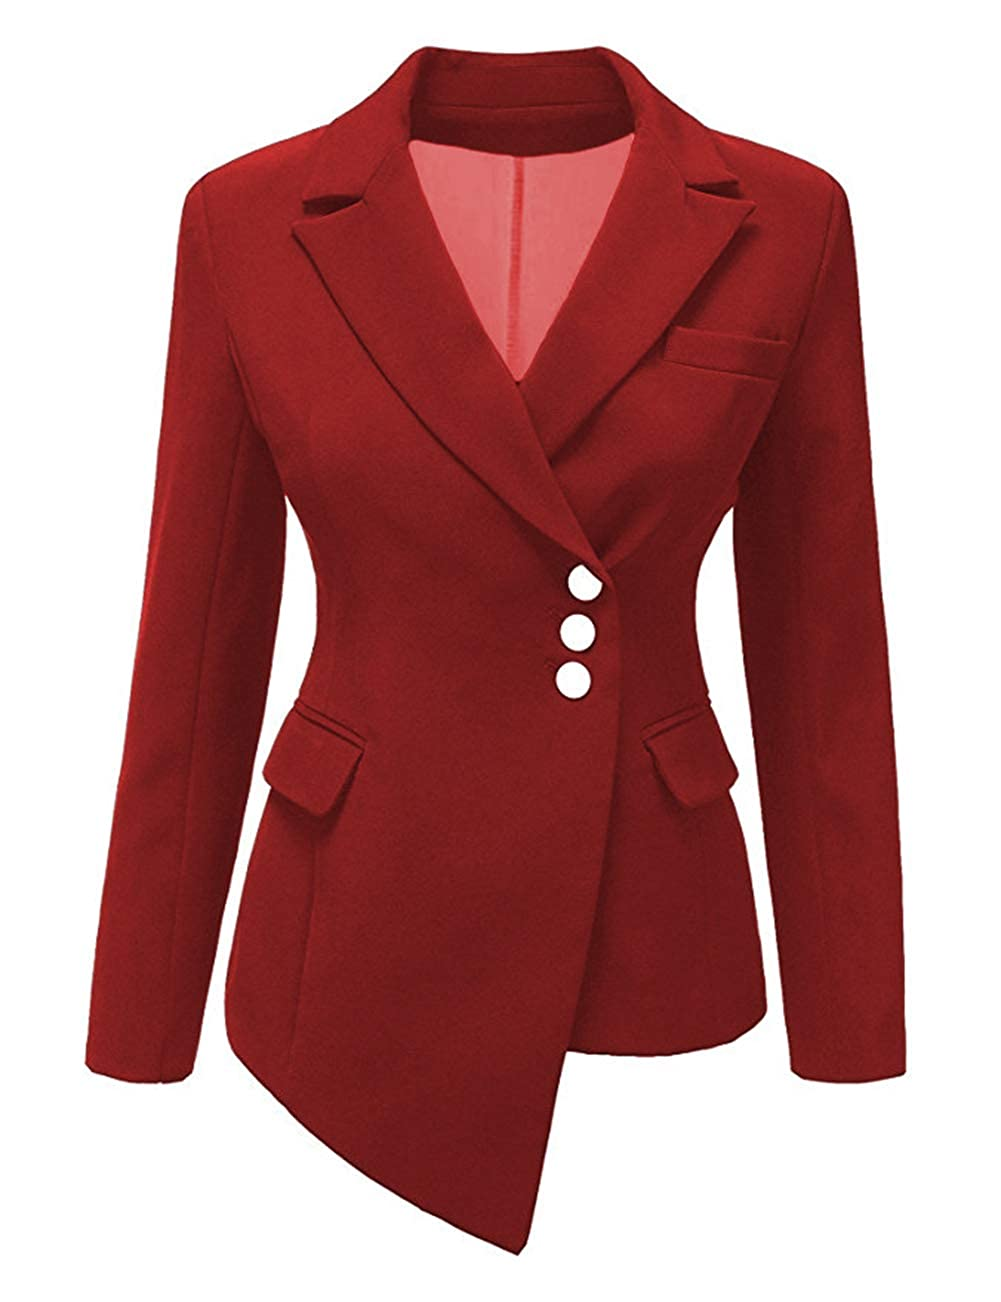 Blazers for Women Womens Jackets - Chaquetas De Mujer Womens Notched Lapel Button Work Office Blazer Jacket Suit